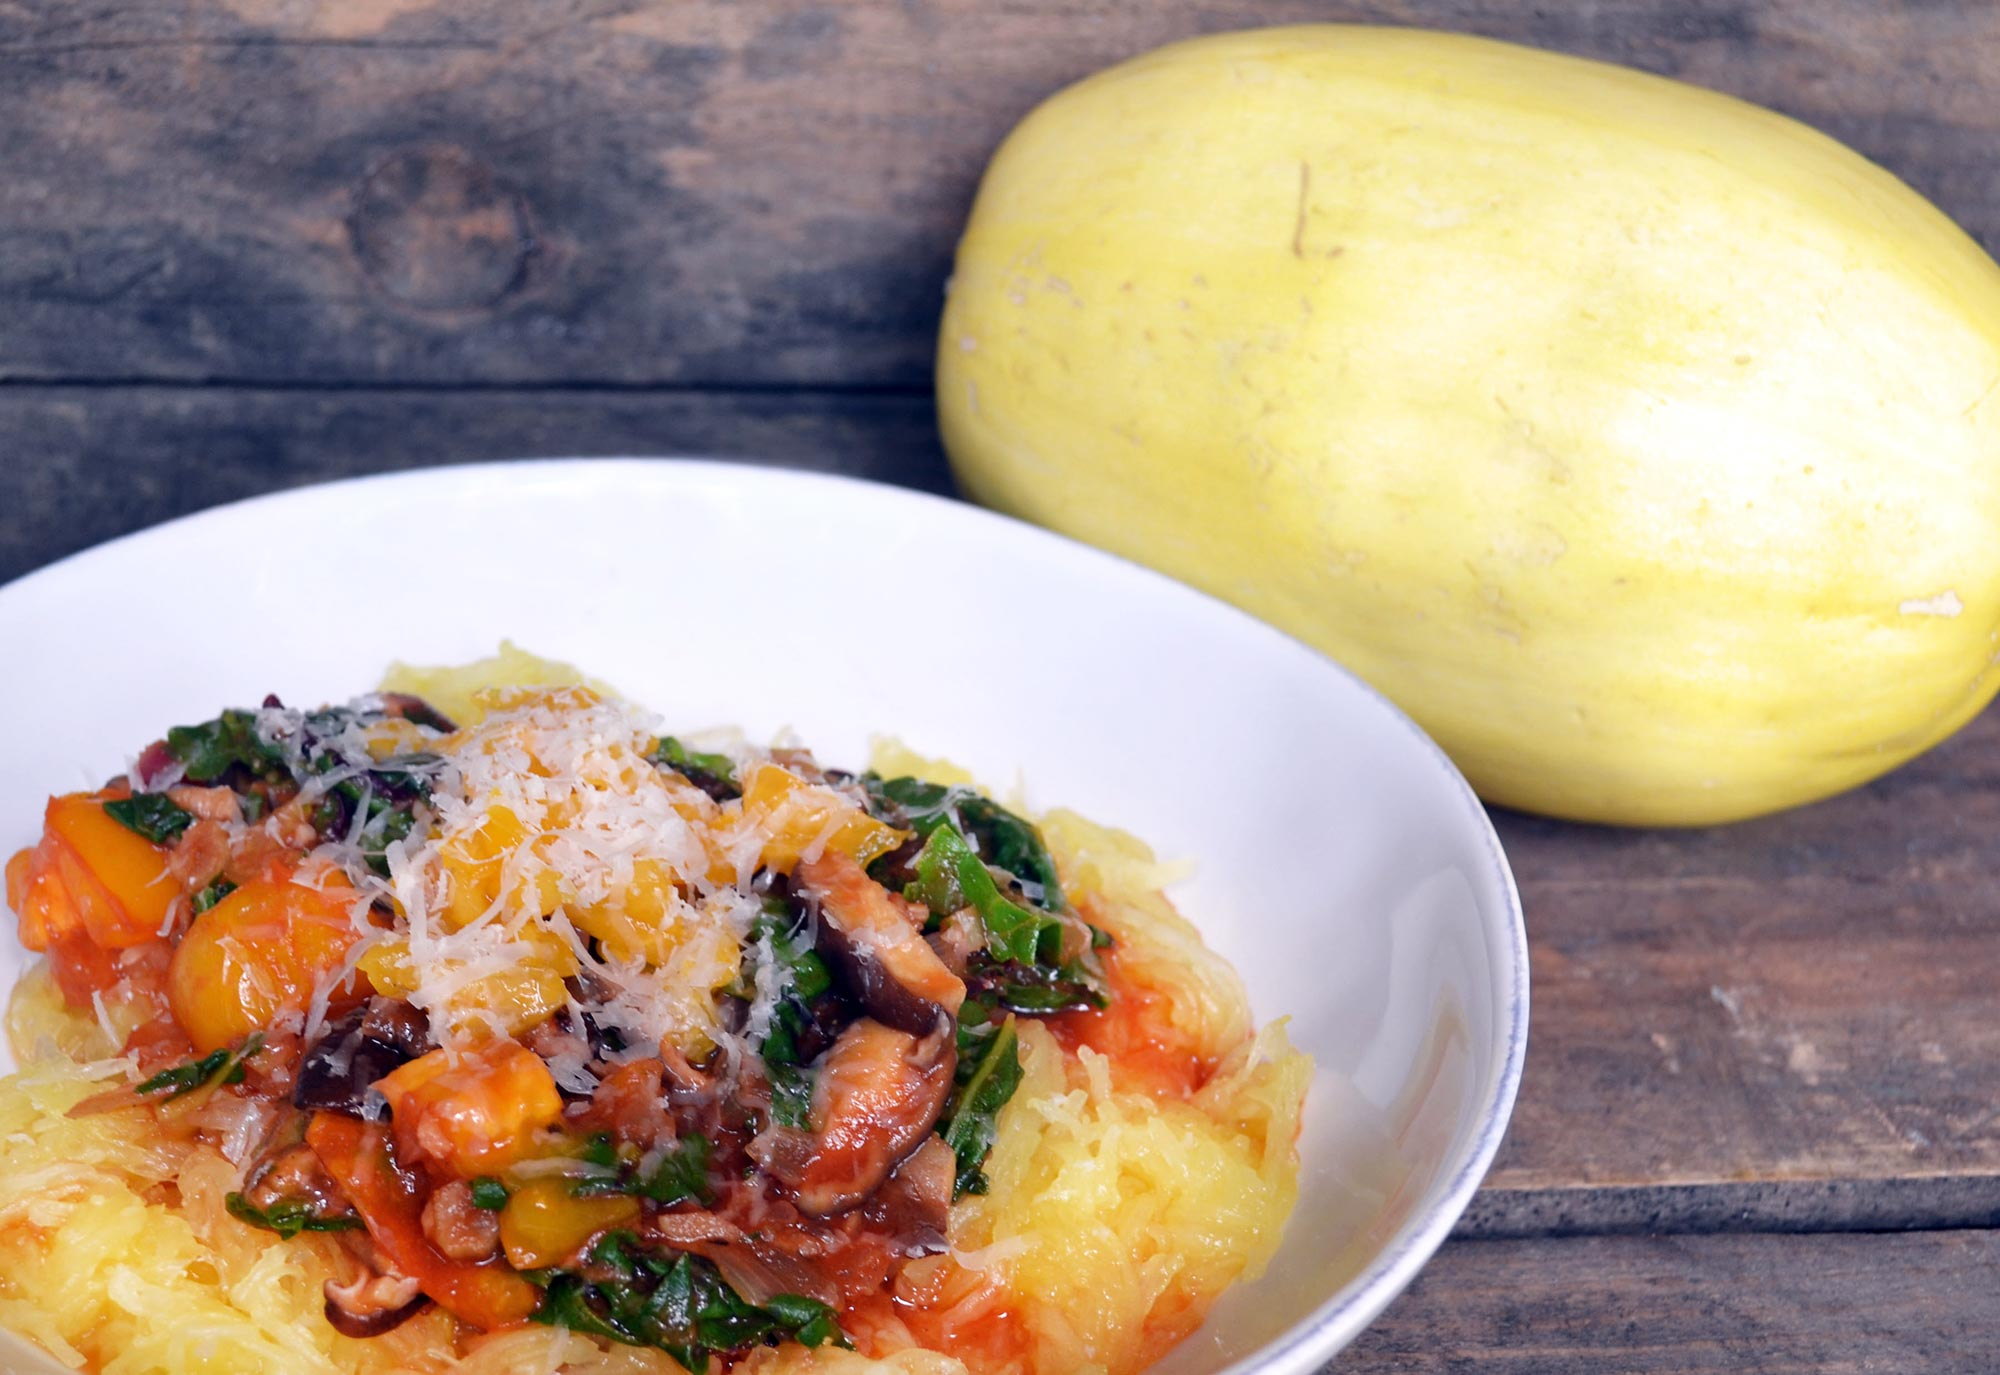 Spaghetti Squash with Shiitakes, Tomato Sauce and Chard